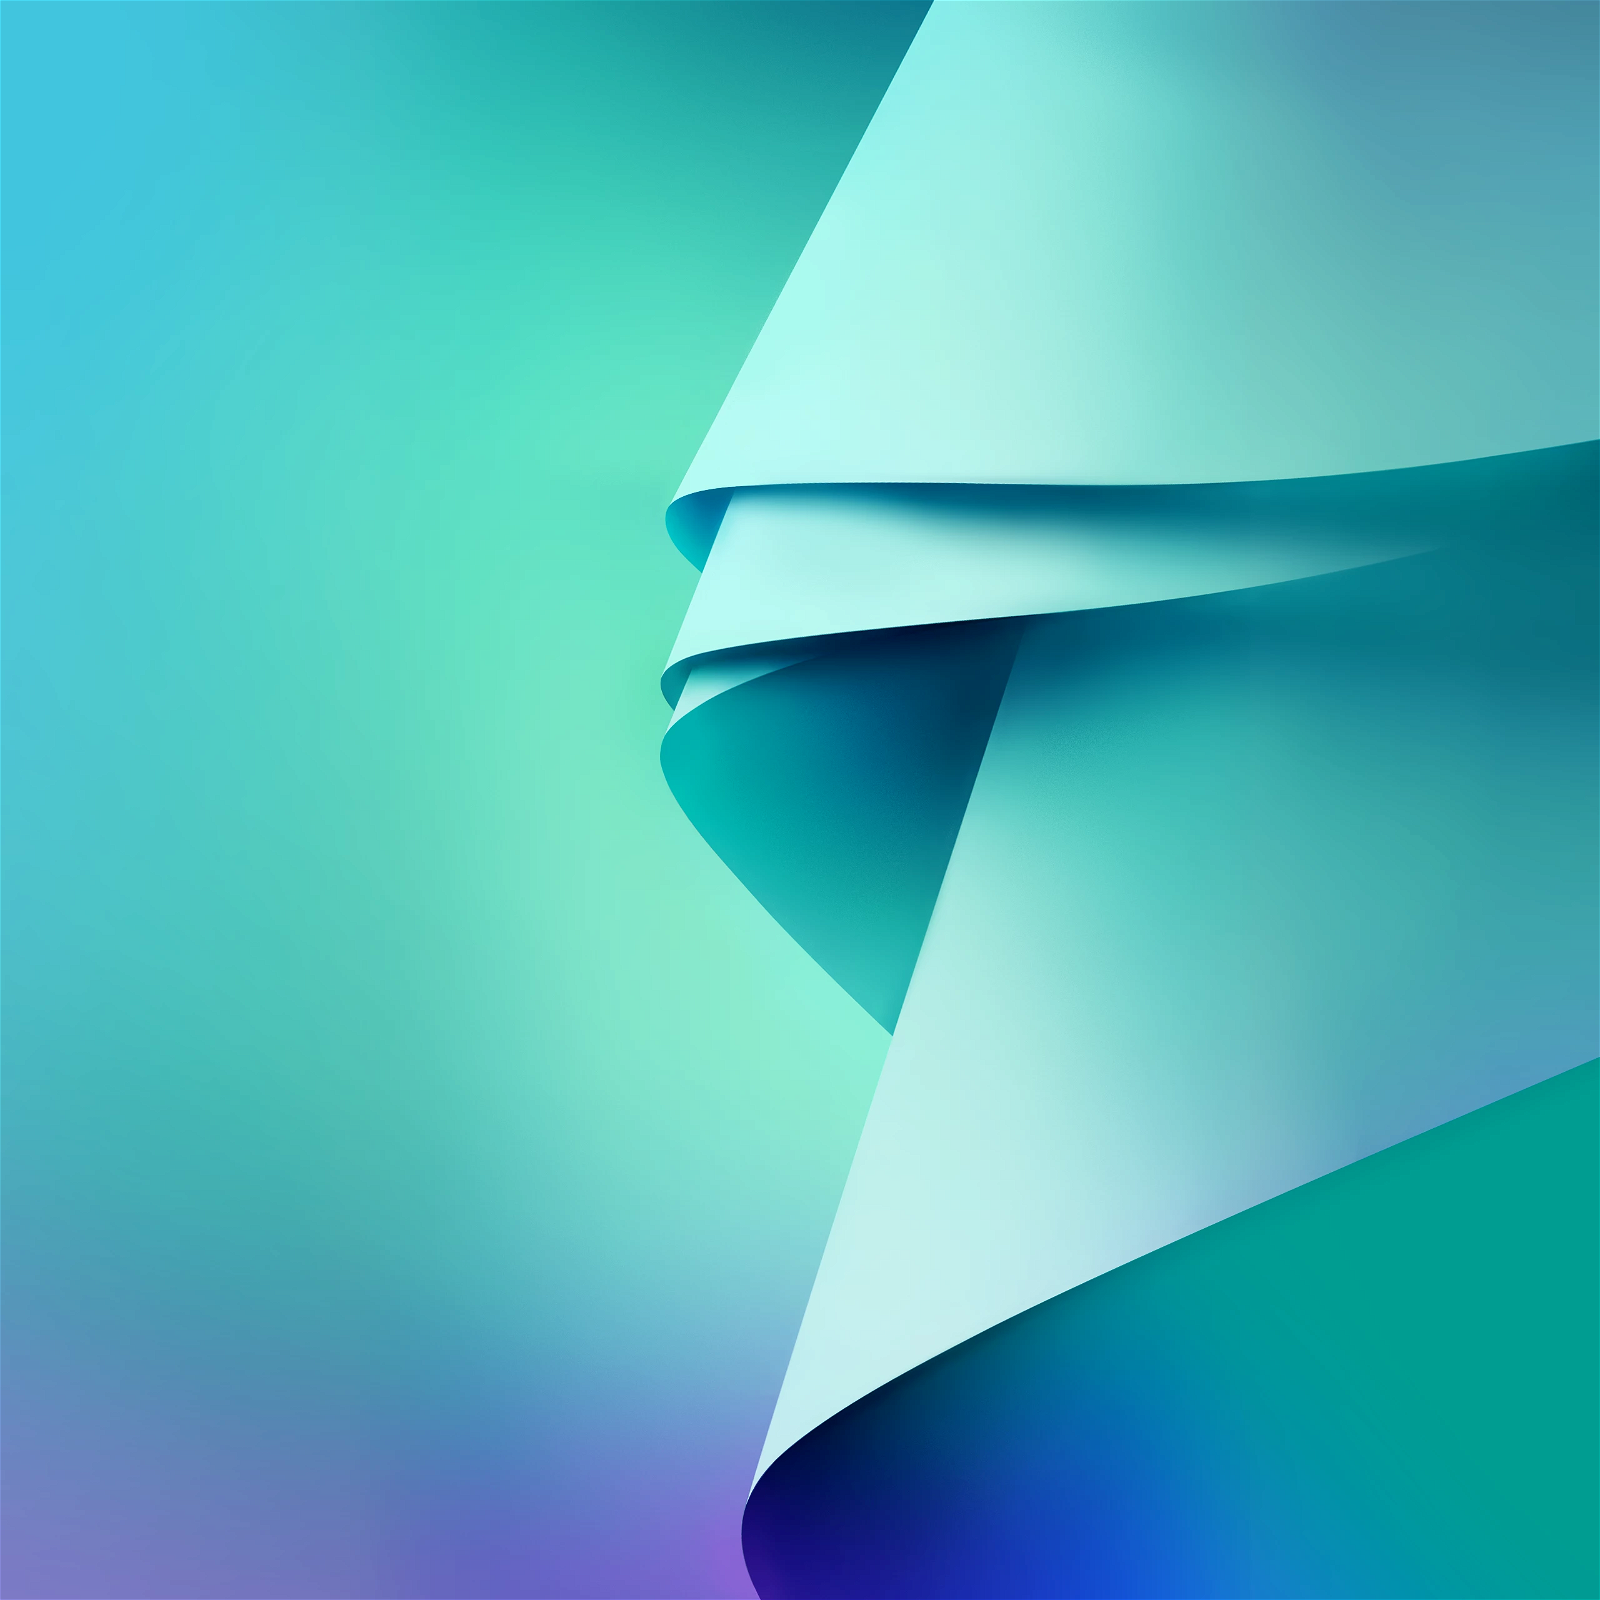 Samsung galaxy note 5 quad hd wallpapers download now voltagebd Image collections